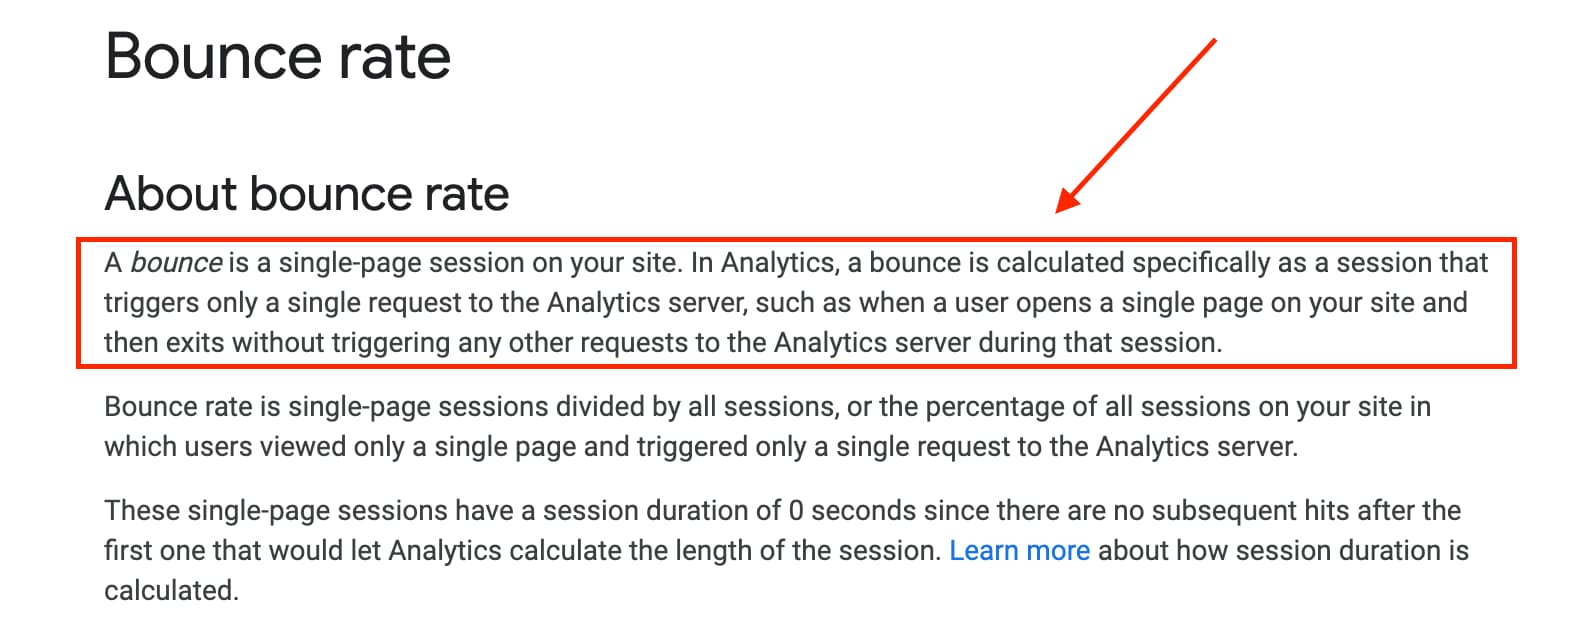 Google Bounce rate definition